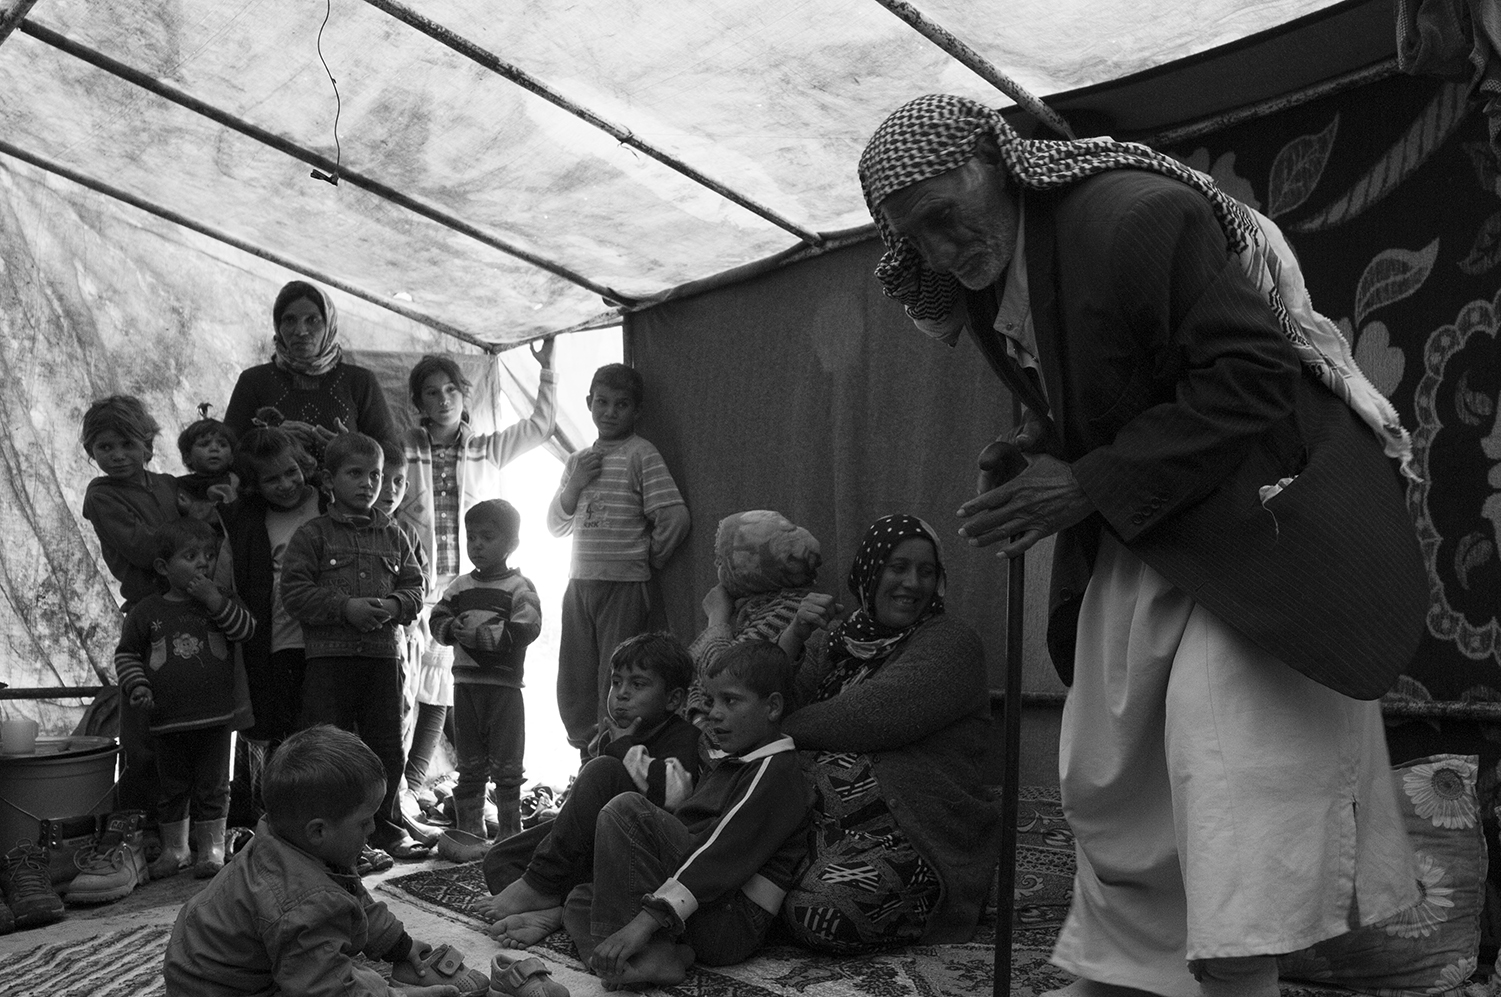 """""""Baram"""" next to his 9 months pregnant wife, his children and the membersof two other families staying in the tents next to his."""